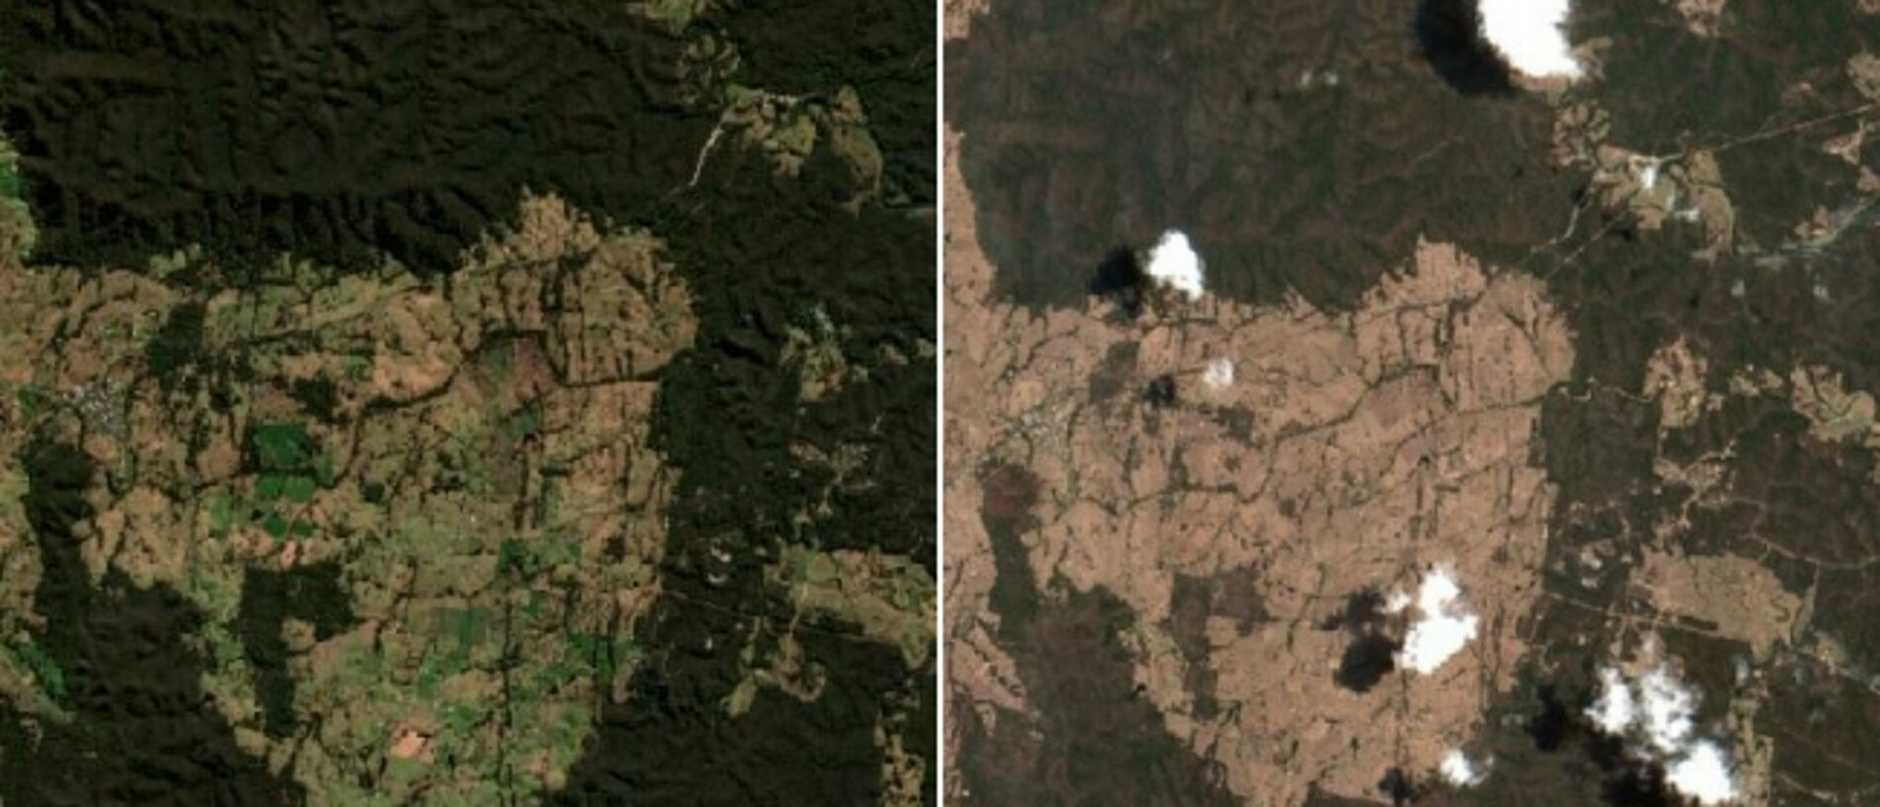 Never-before-seen satellite images show NSW towns before and after the bushfire crisis, revealing the devastating scale of the state's worst-ever fire season.